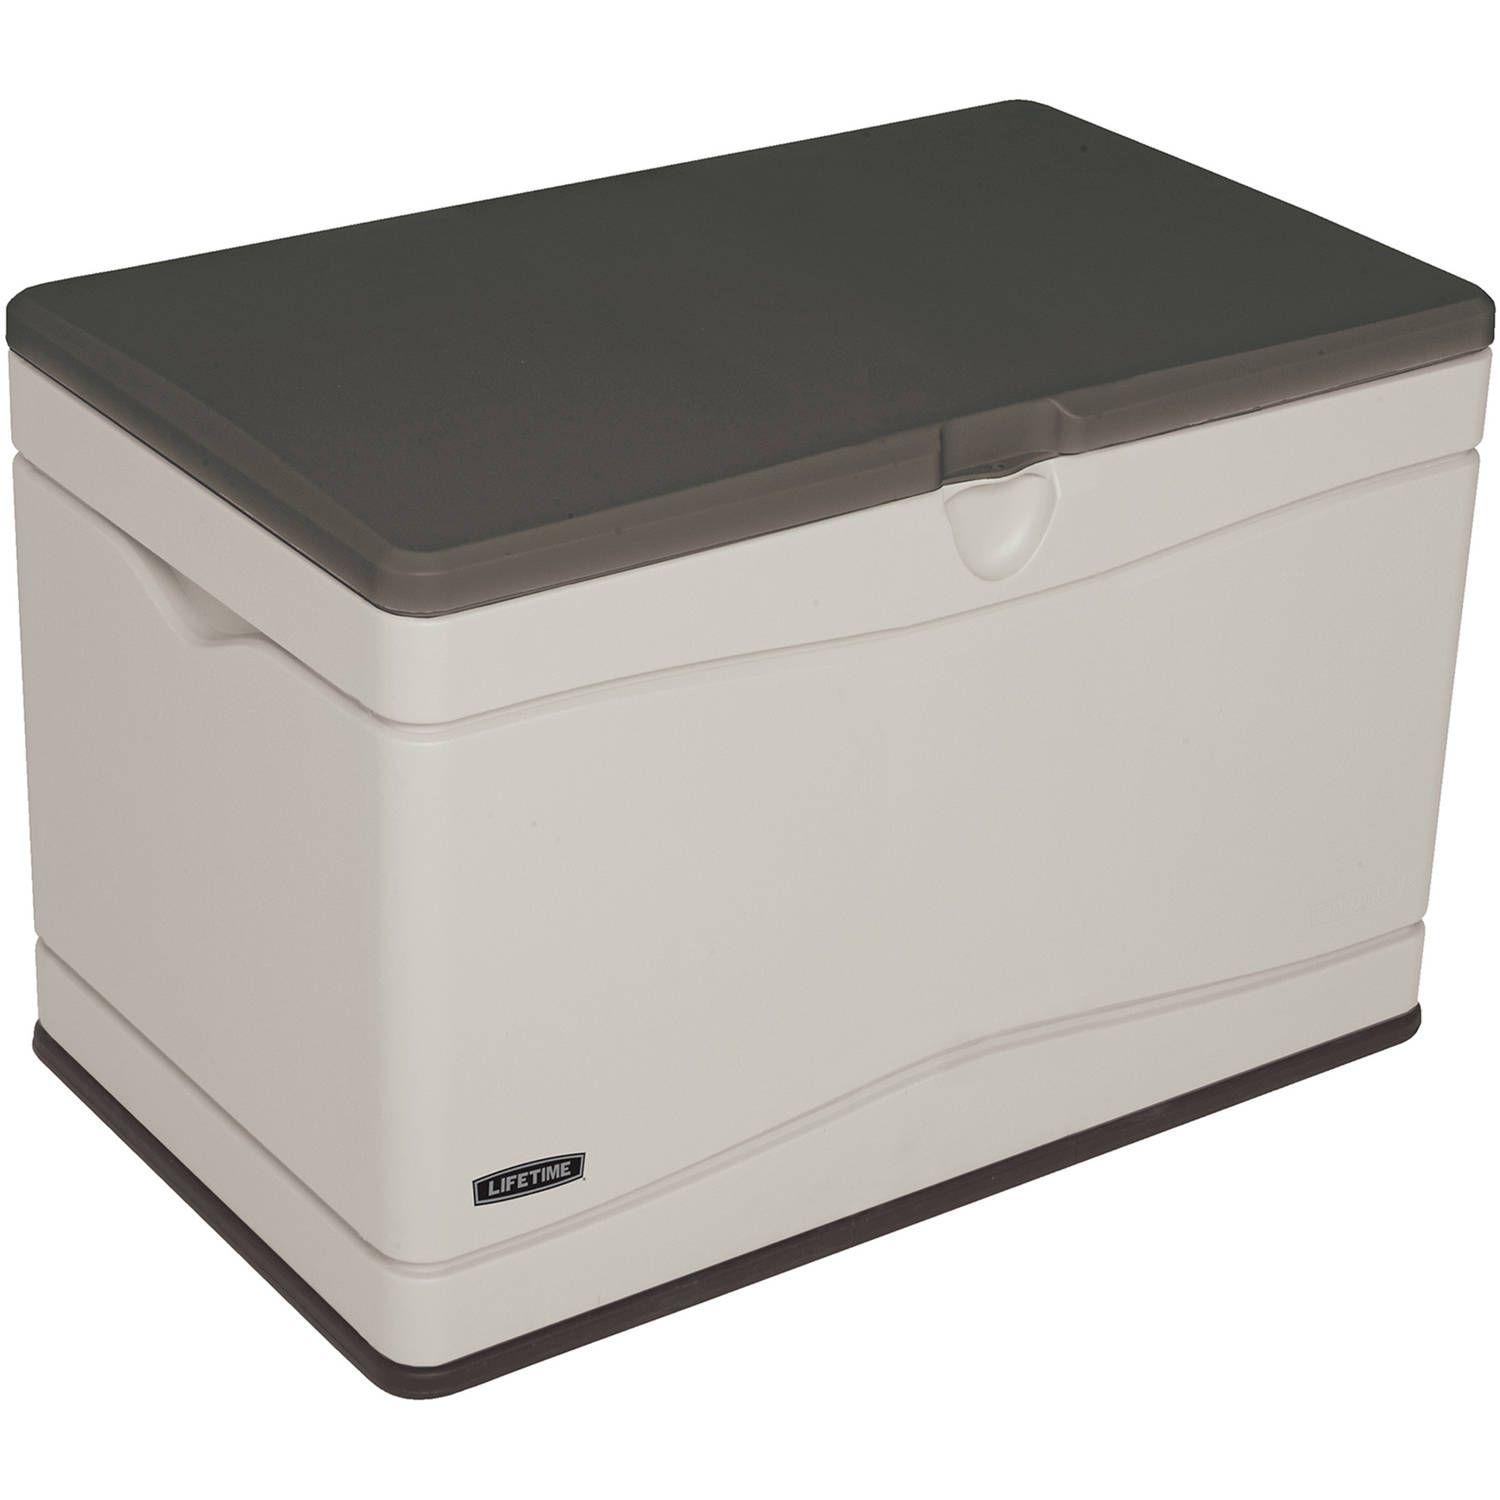 Incroyable Lifetime Outdoor Storage Box (80 Gallon)